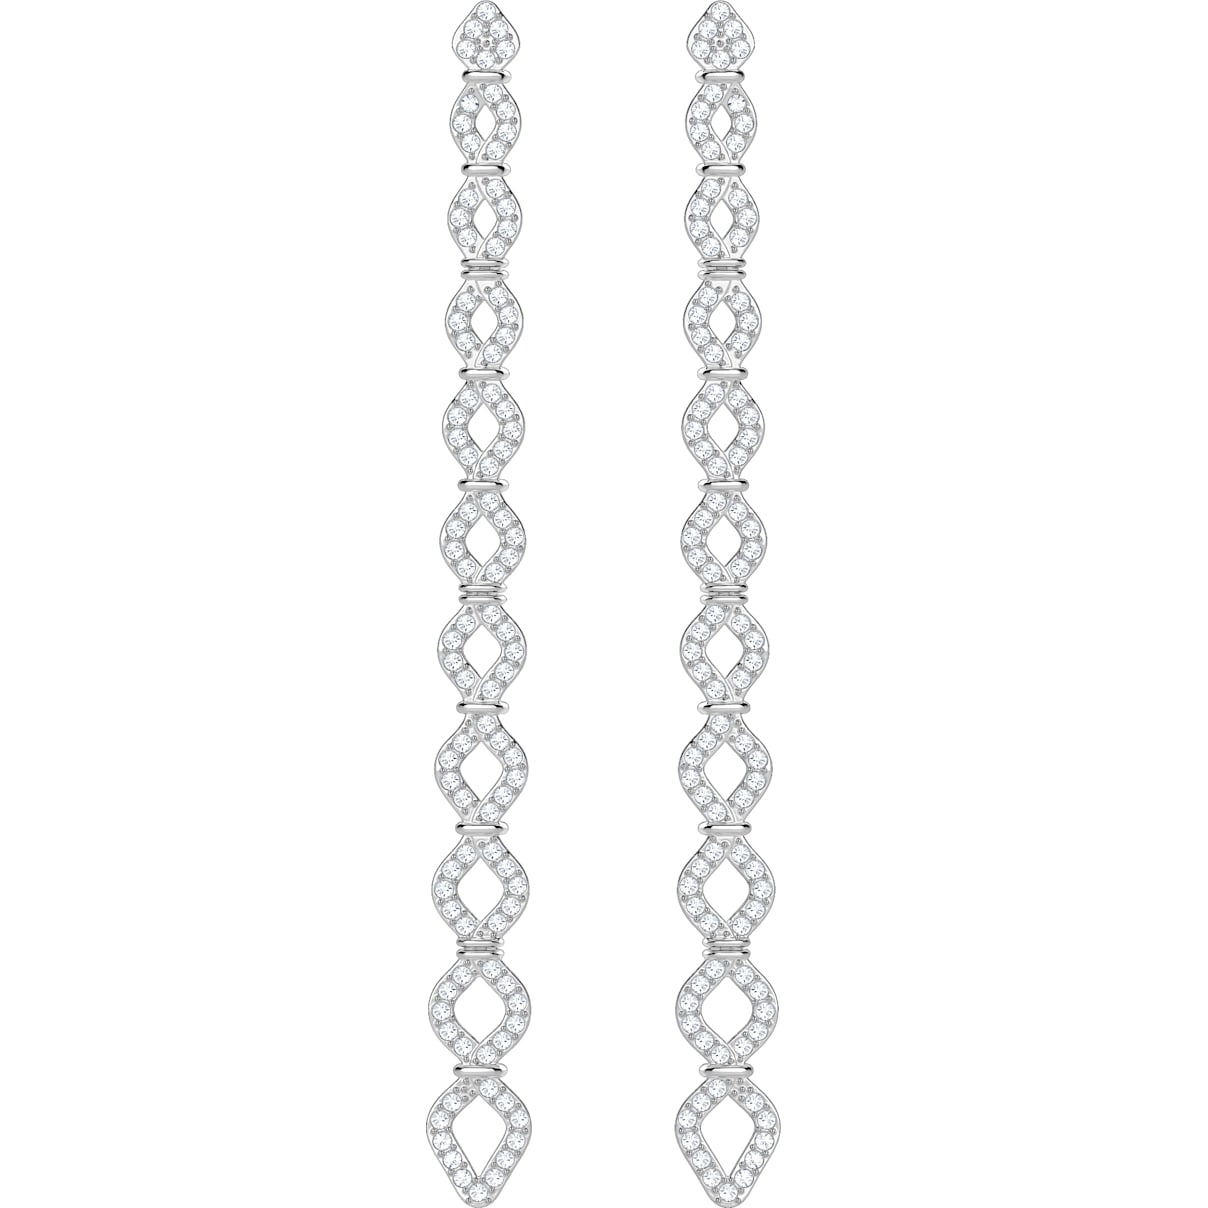 Swarovski Lace Pierced Earrings, White, Rhodium plated